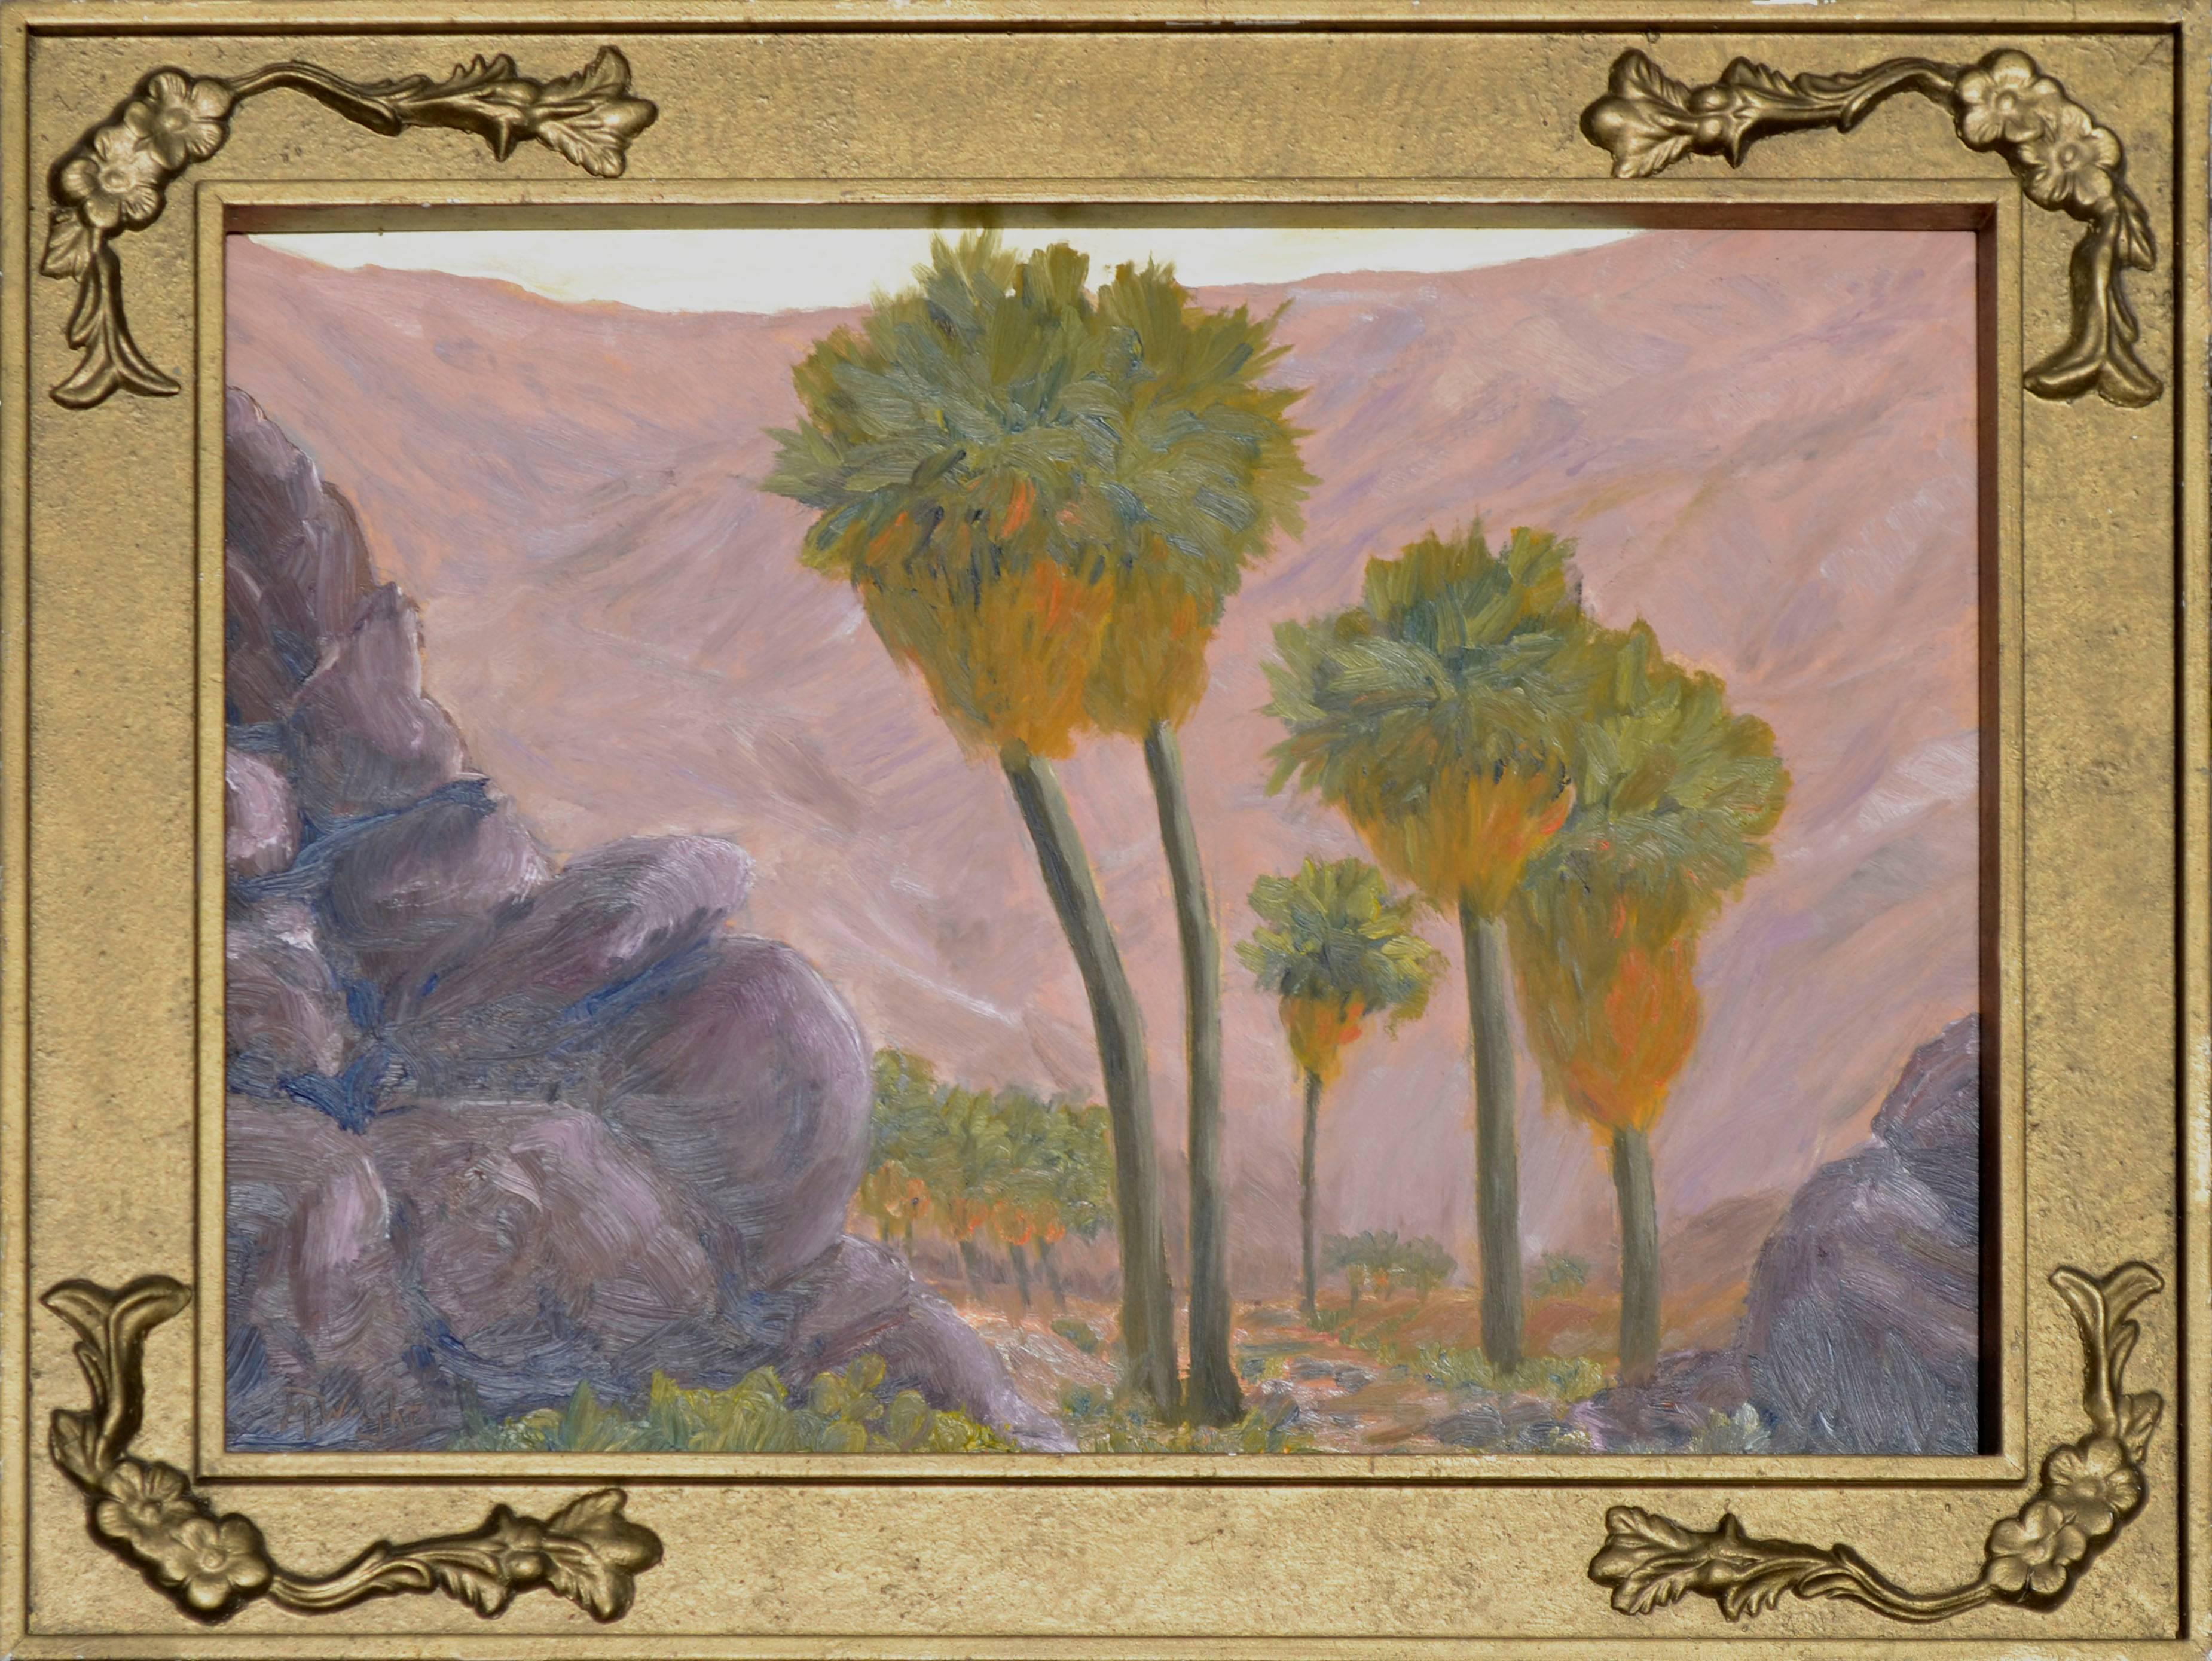 Palms and Mountains Landscape